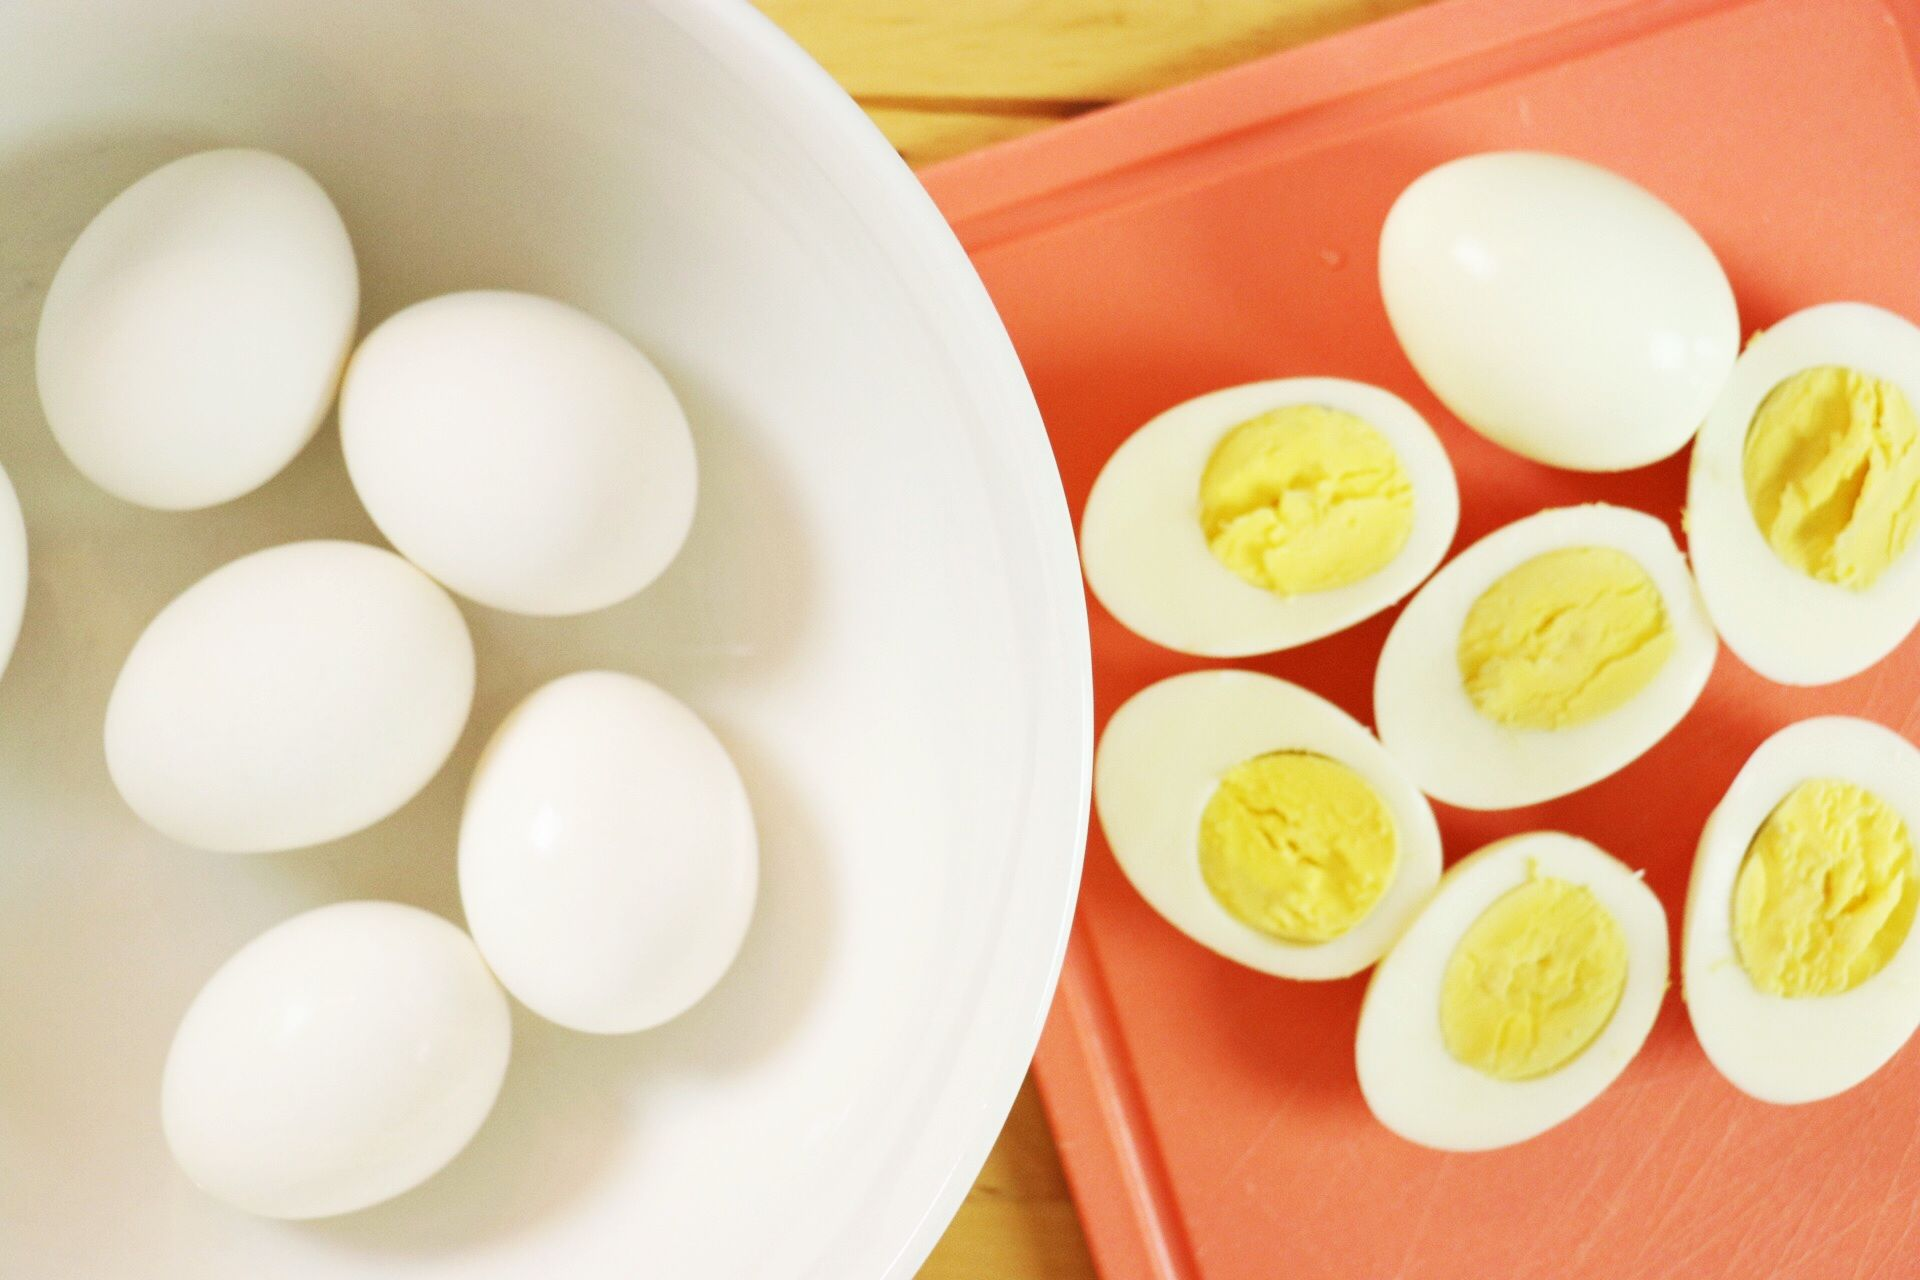 Step-By-Step How To Hard Boil Eggs In An Instant Pot